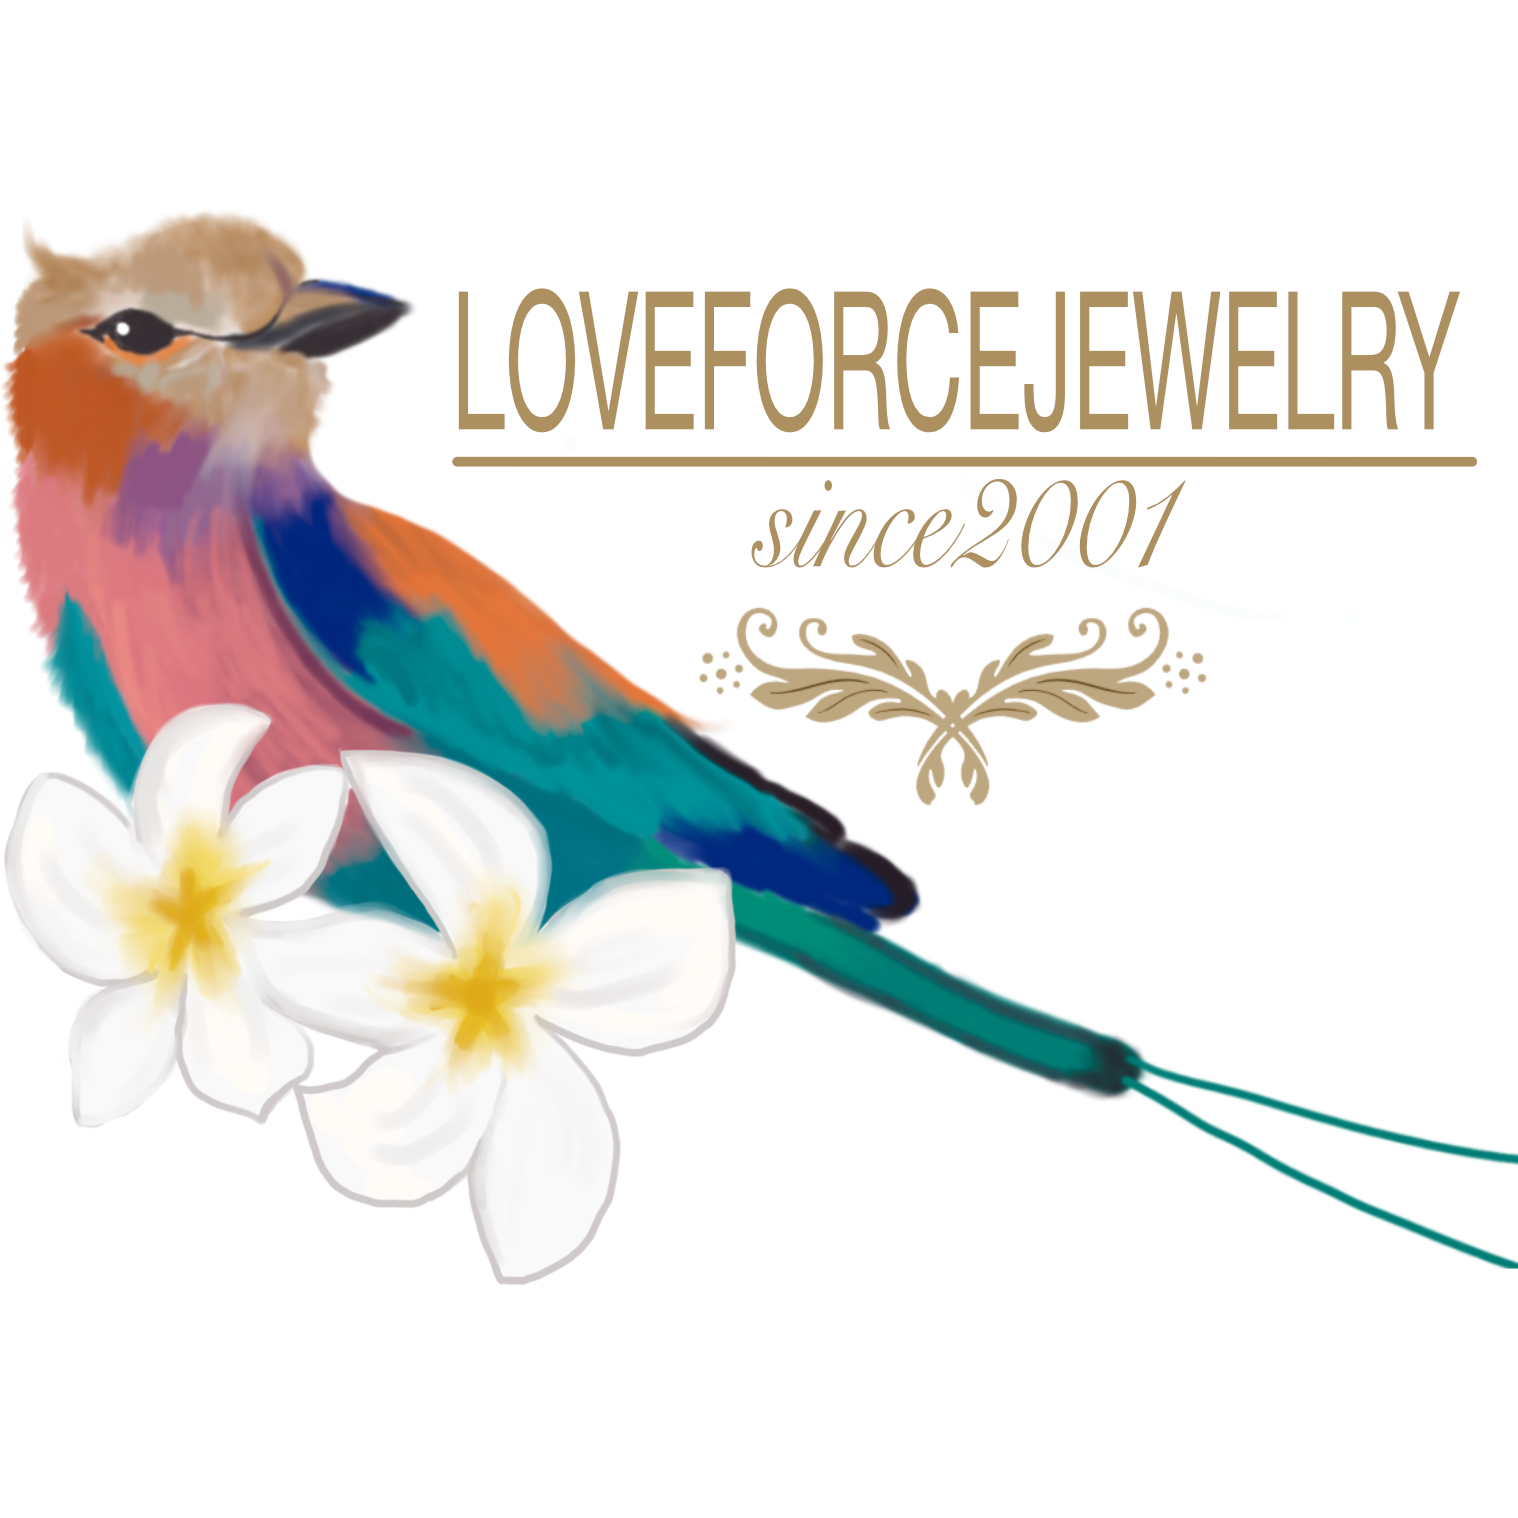 LOVEFORCEJEWELRY